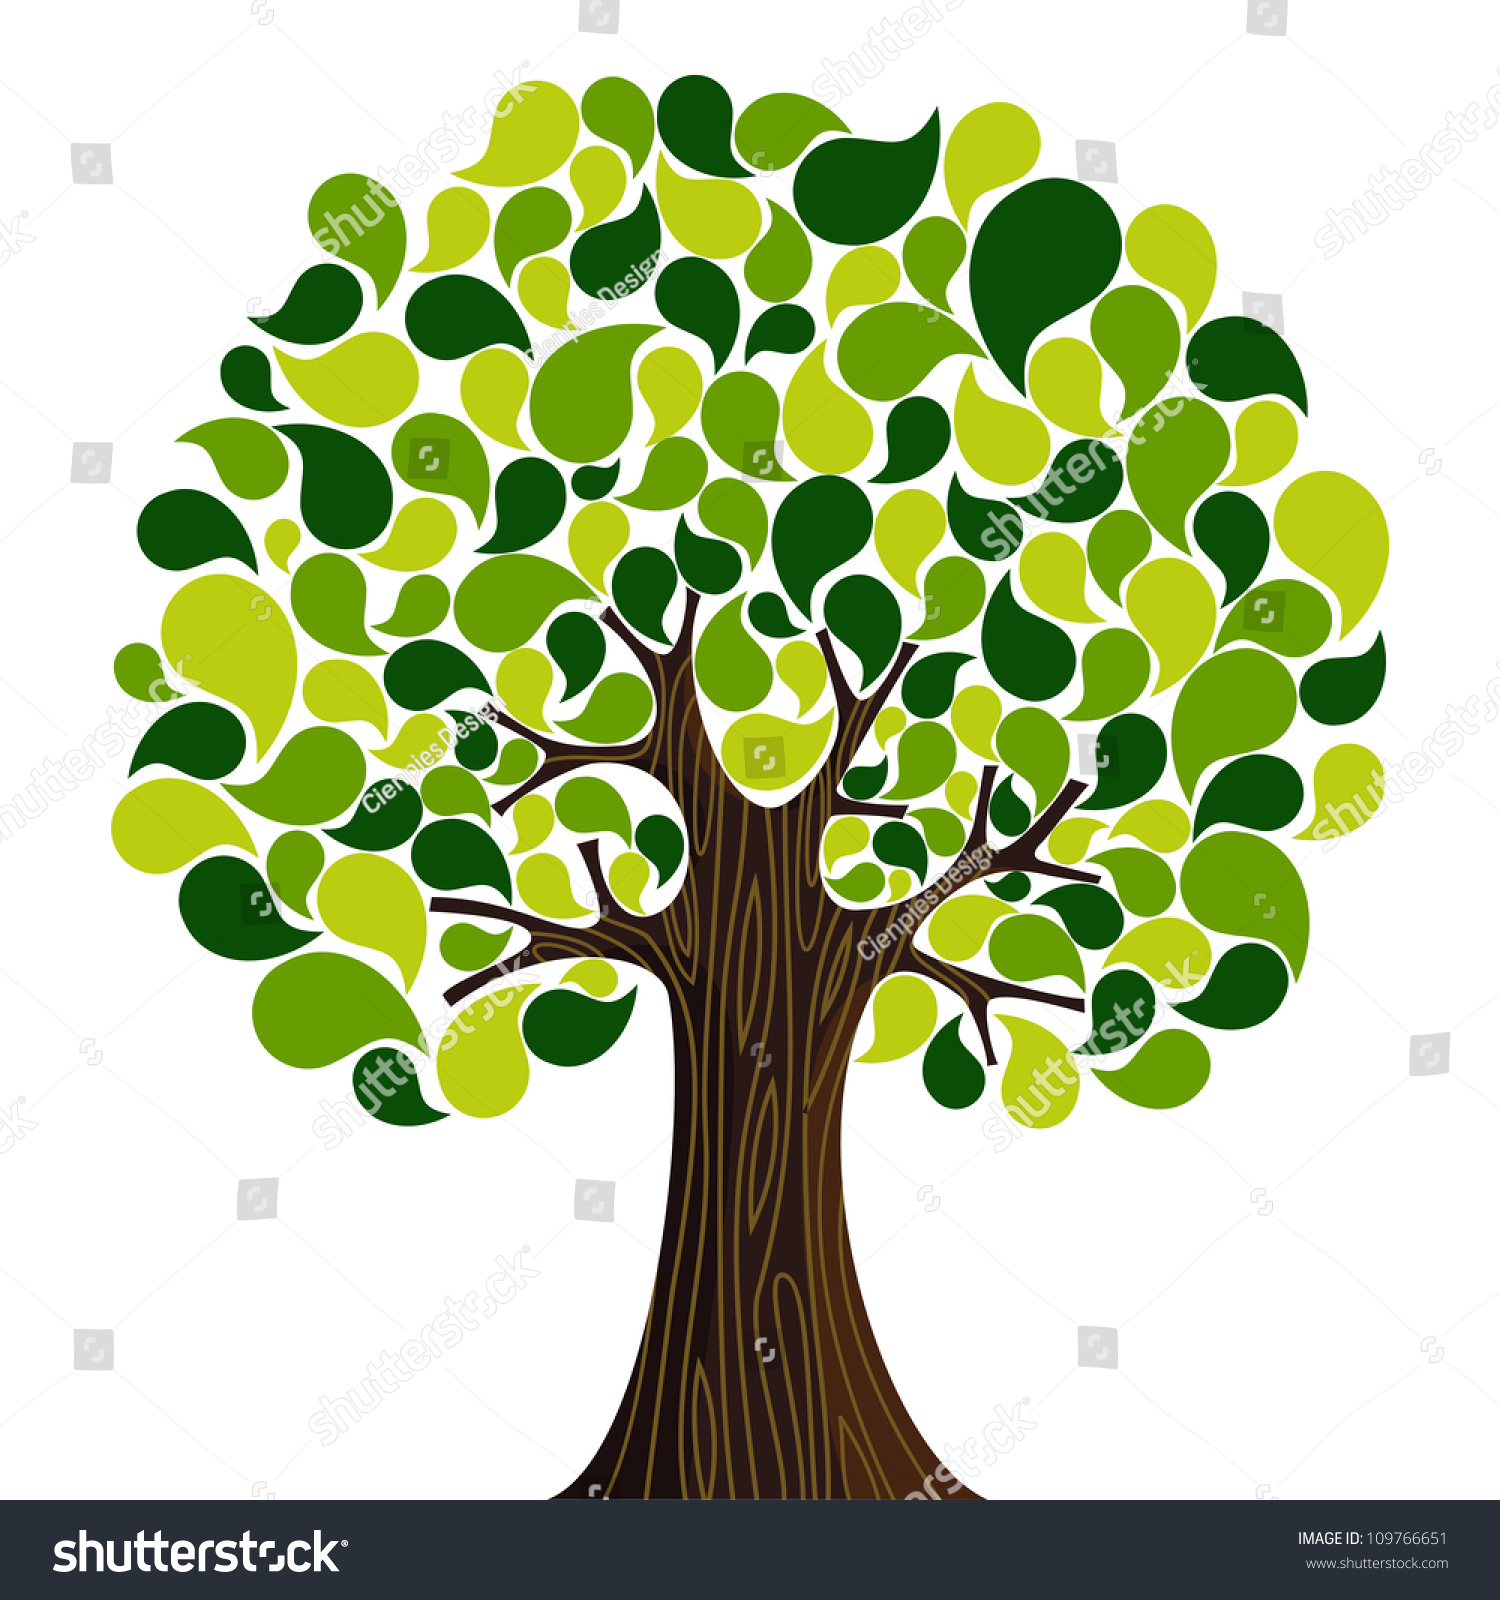 Abstract Spring Time Tree Composition Flowers Stock Vector (Royalty ...